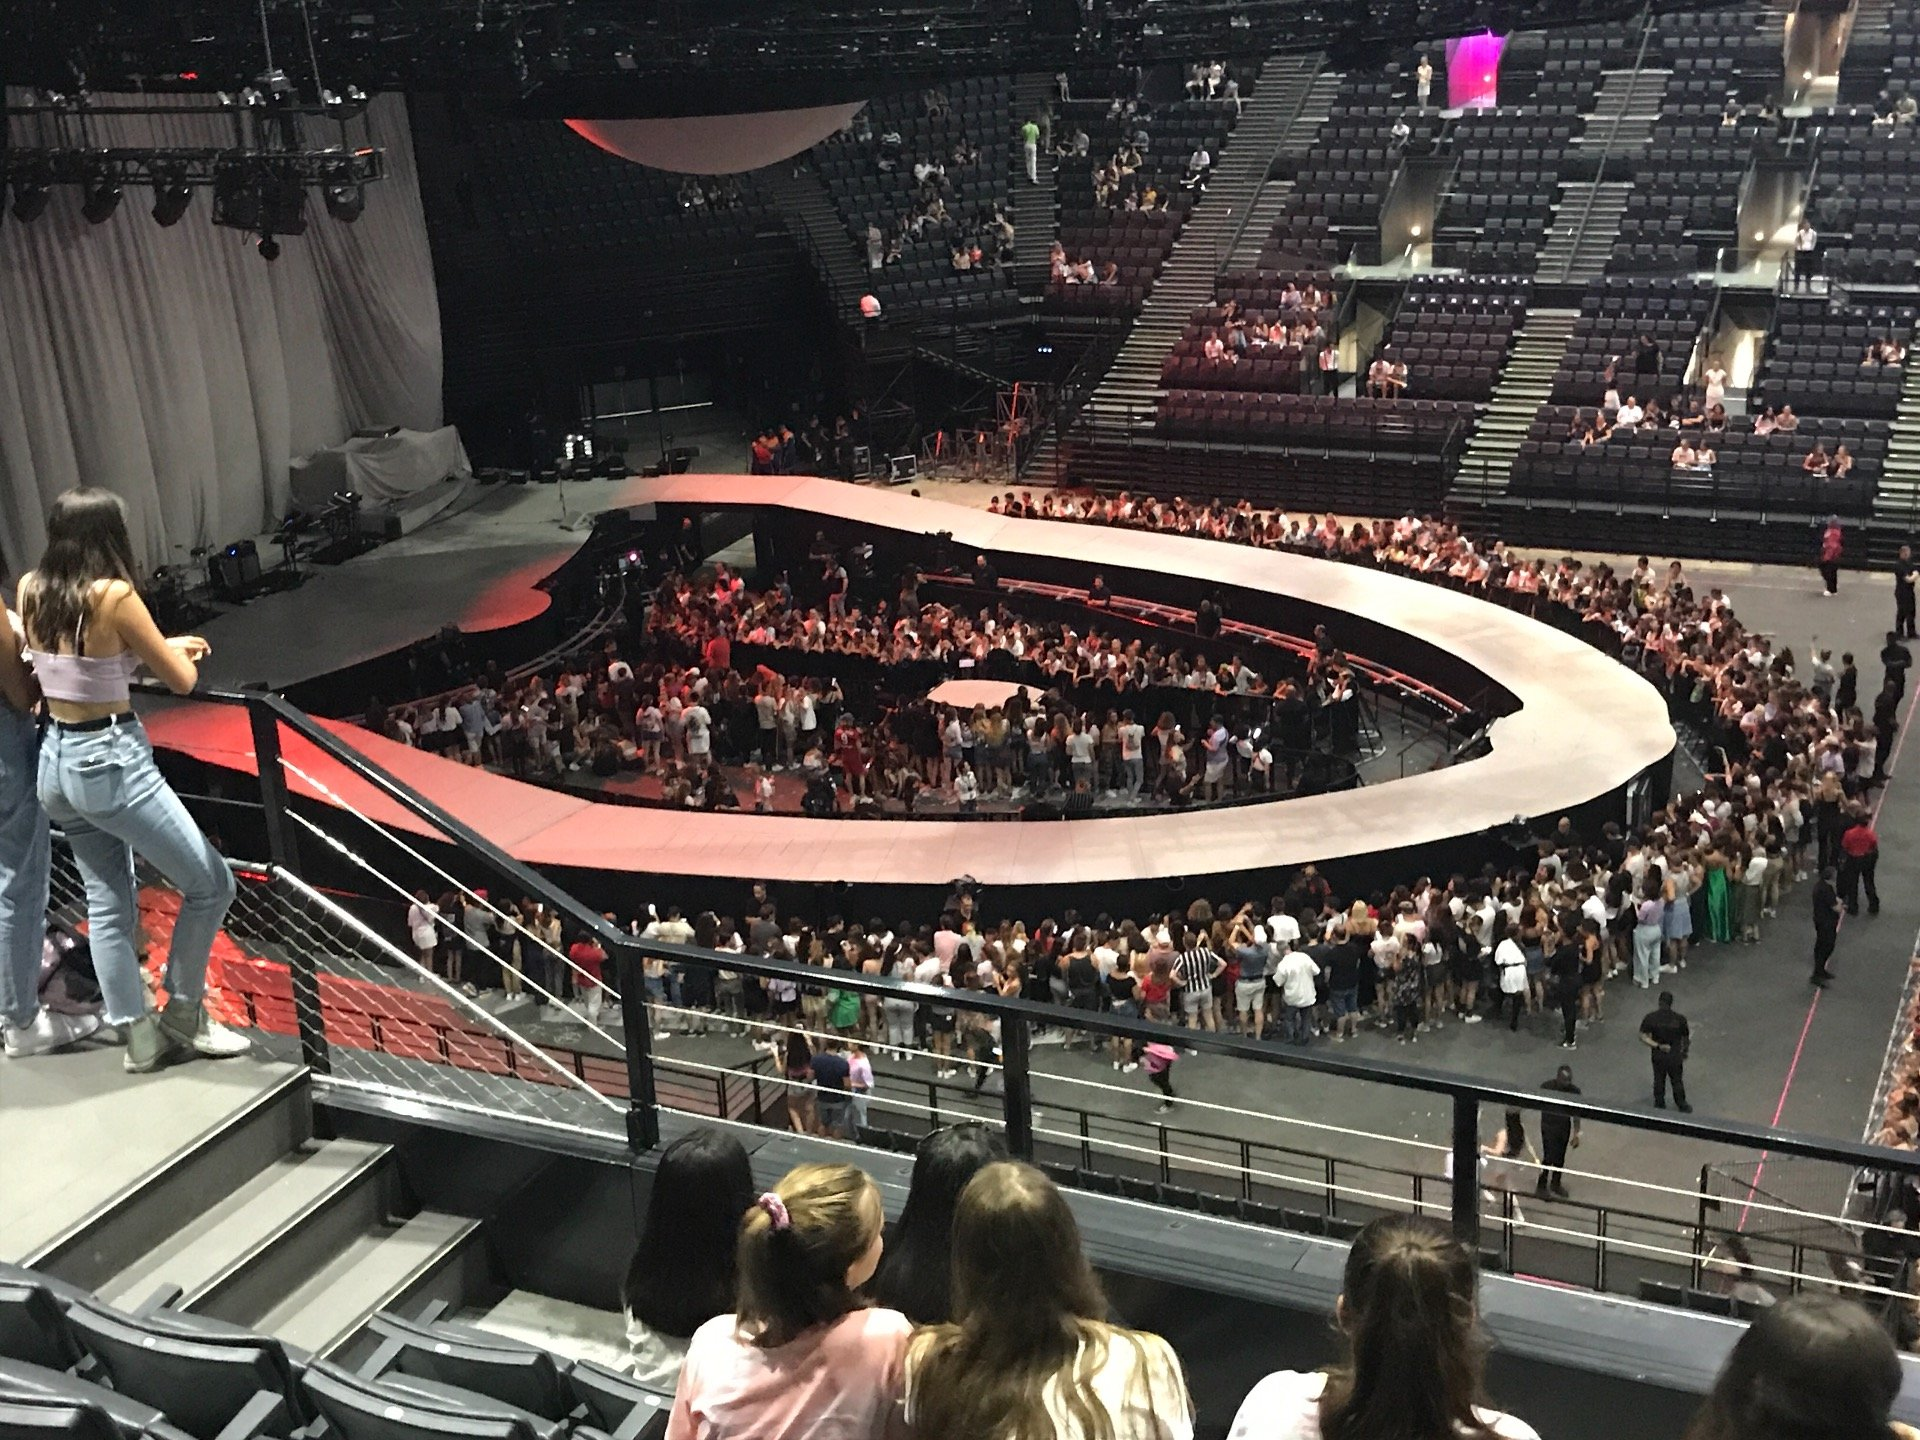 AccorHotels Arena Section Balcon P Row 86 Seat 01